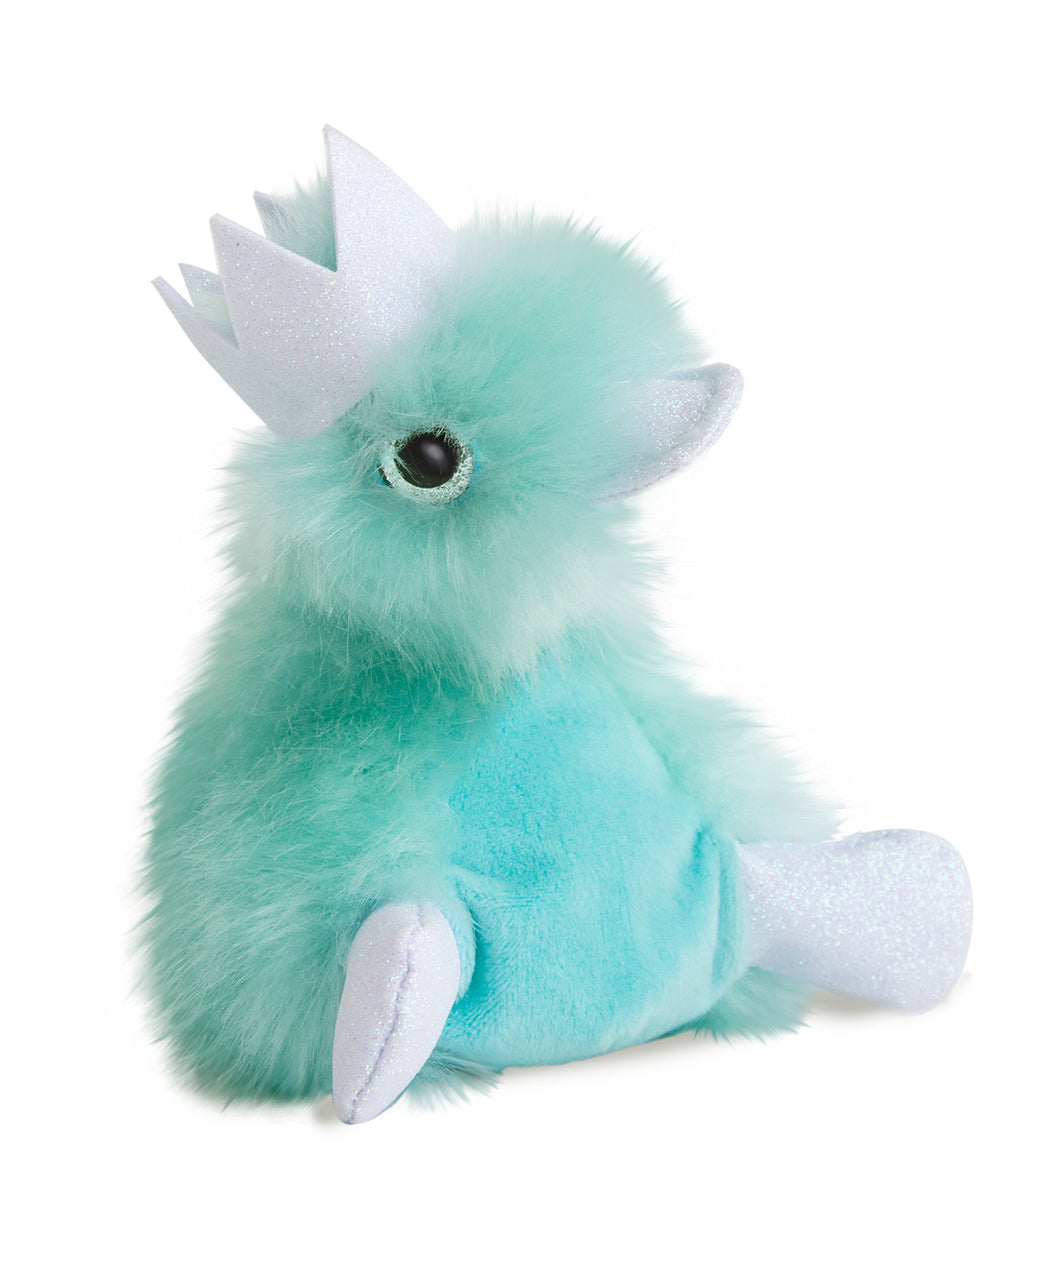 Doudou et Compagnie Coin Coin Stuffed Animal Plush - Minty - 7.1inches